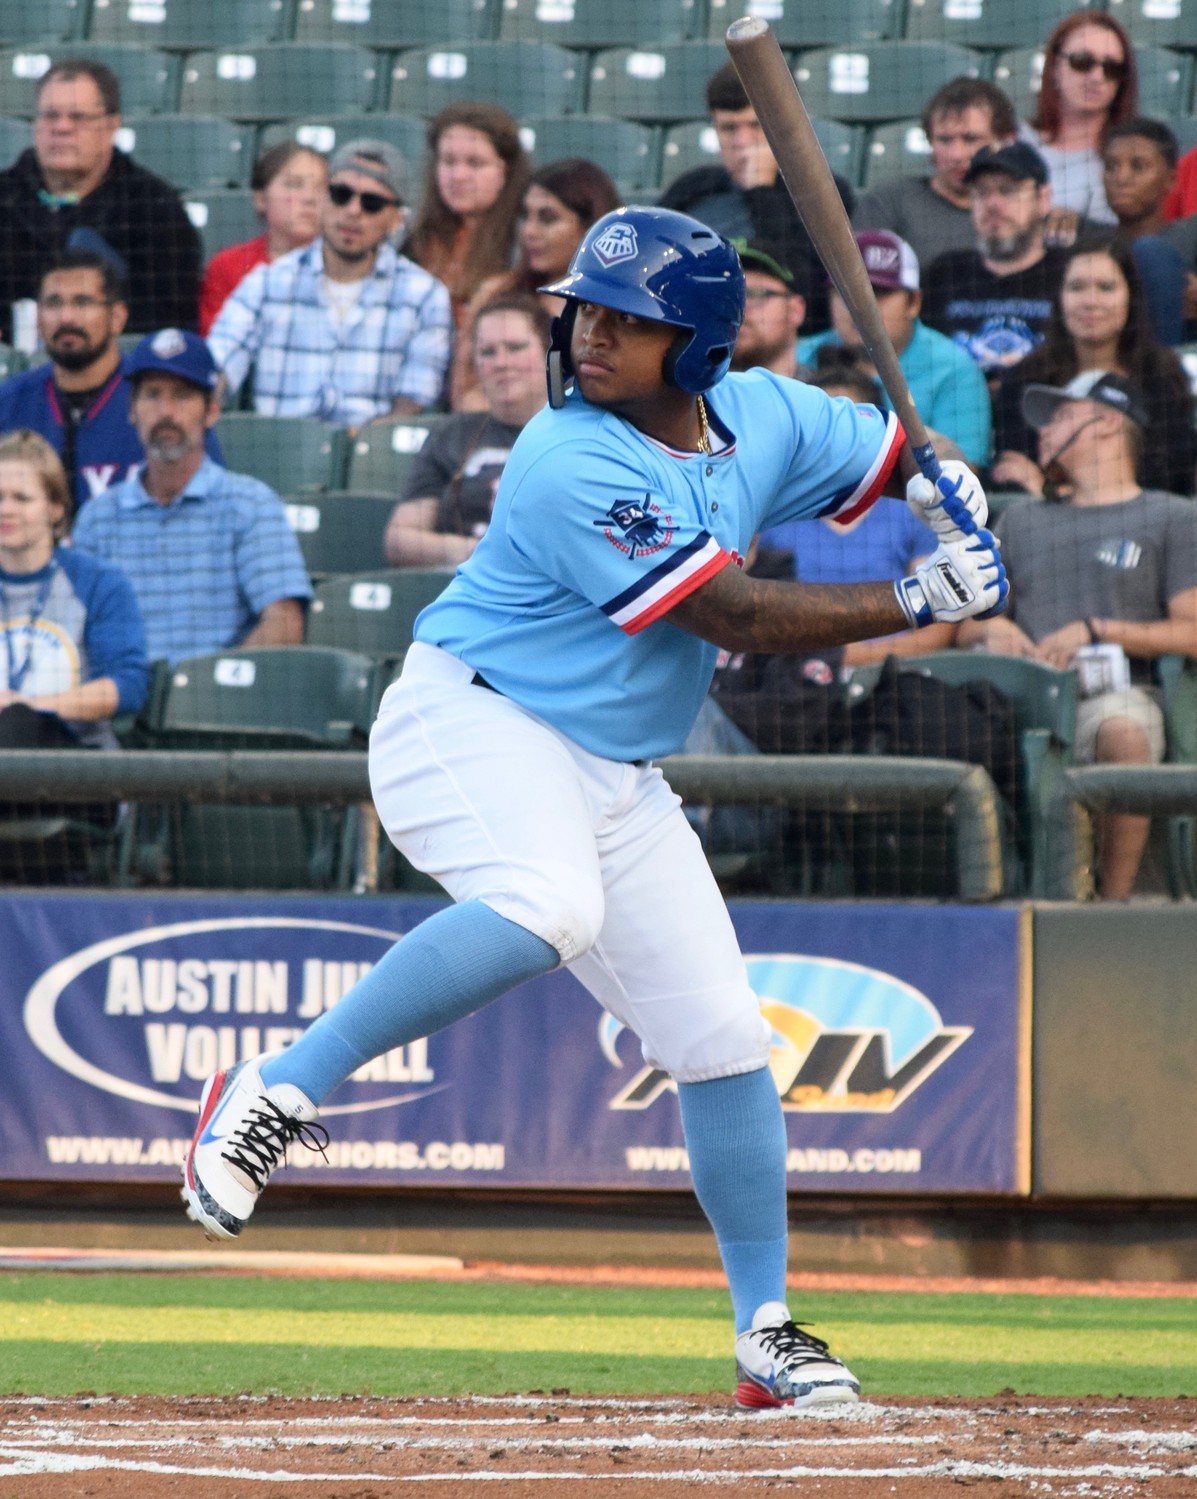 Willie Calhoun reached base in 23 consecutive games before being called up to the Rangers this season and set a new career long with an 18-game hitting streak.